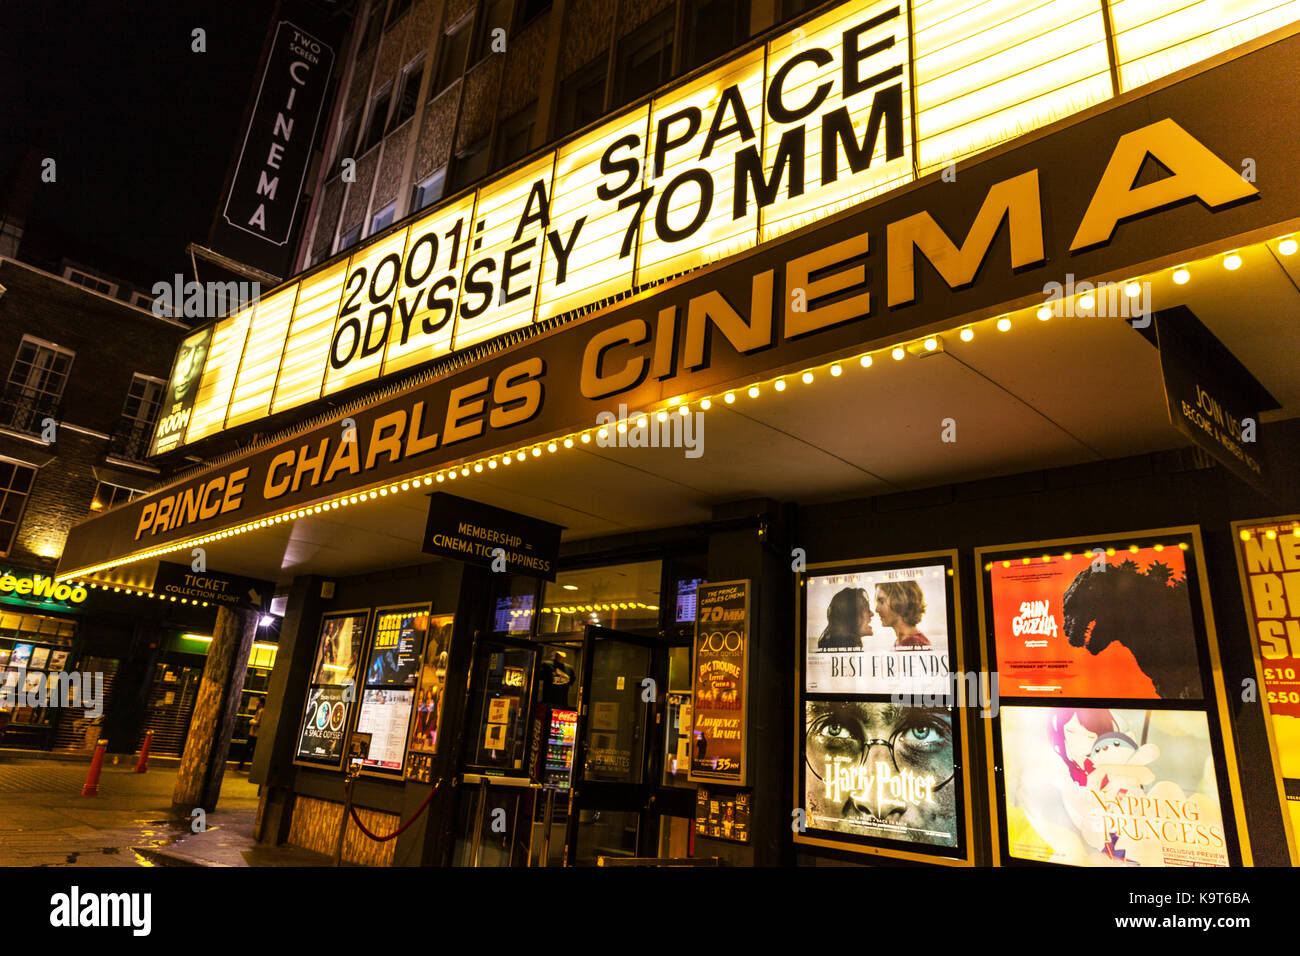 prince Charles cinema china town leicester square london uk, prince charles cinema, china town, leicester square, - Stock Image